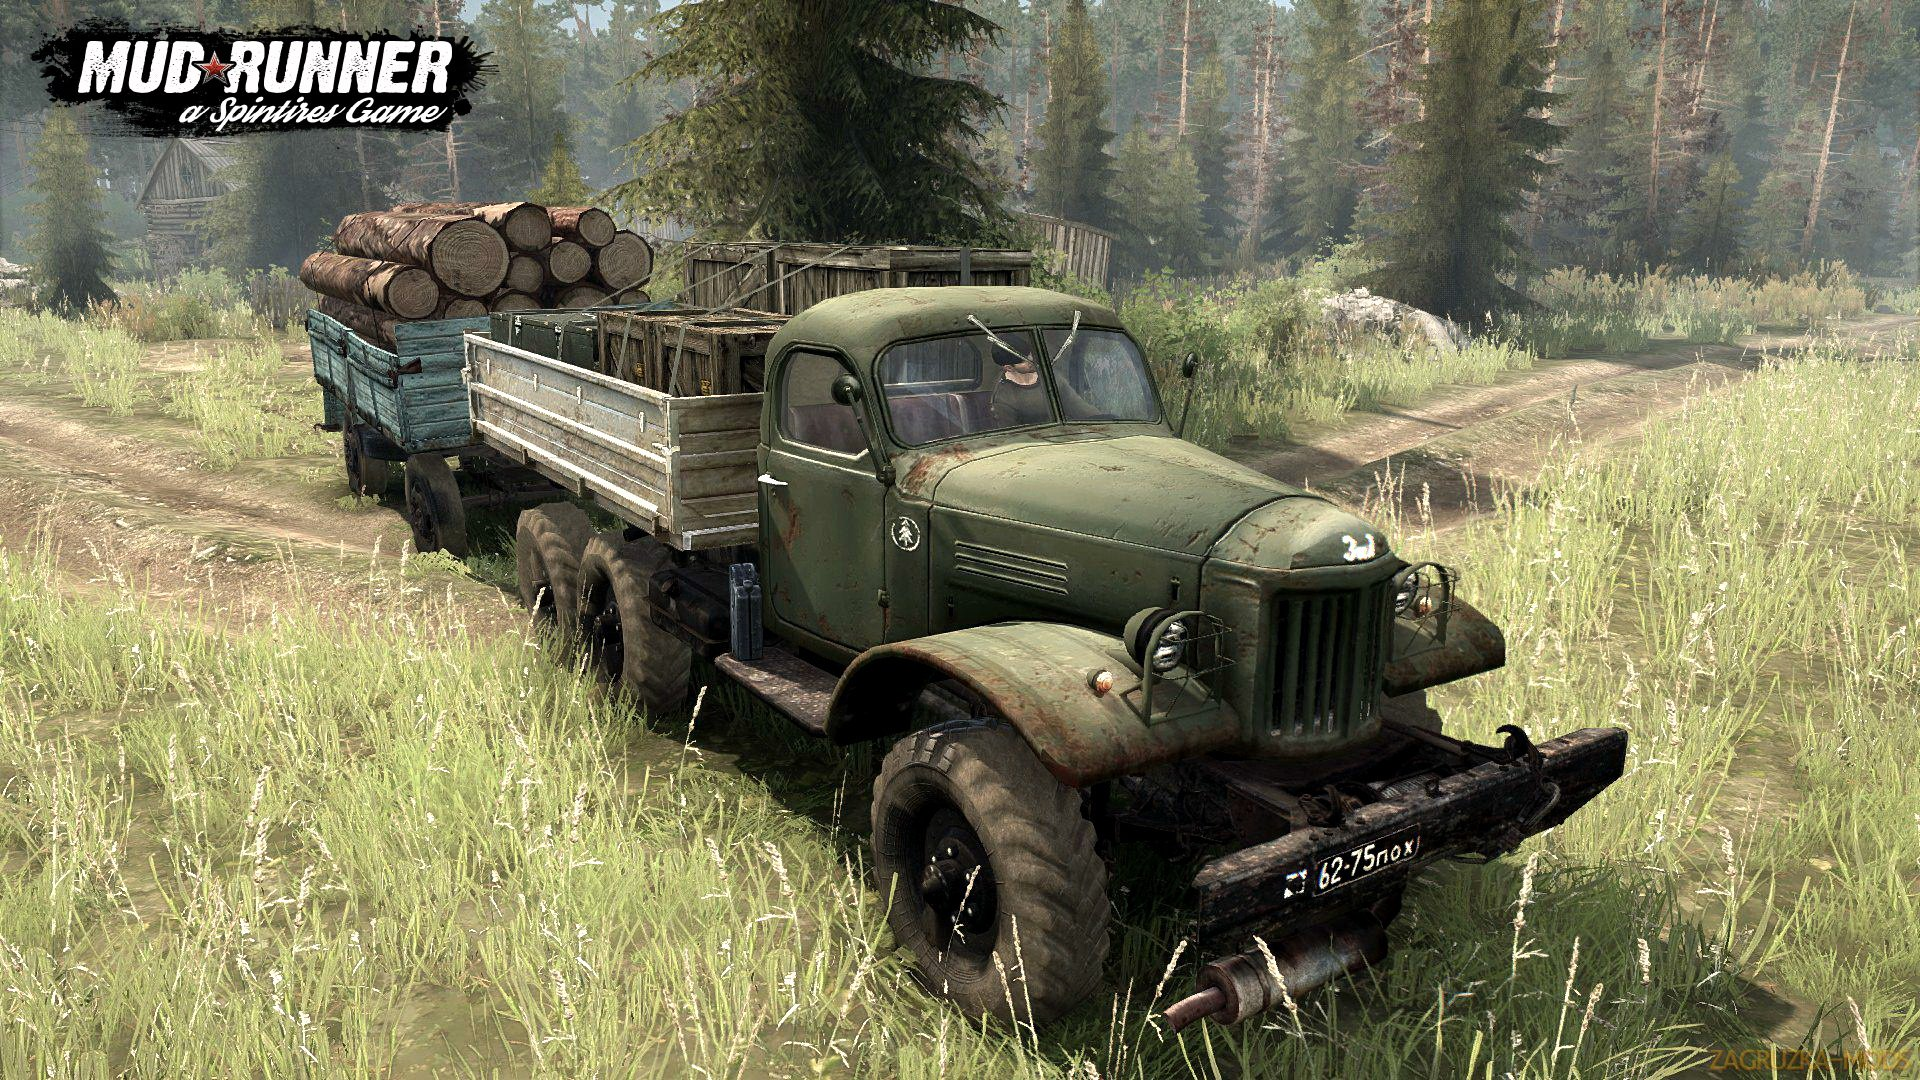 Zil-157 v4.0 (v21.05.18) for SpinTires: MudRunner